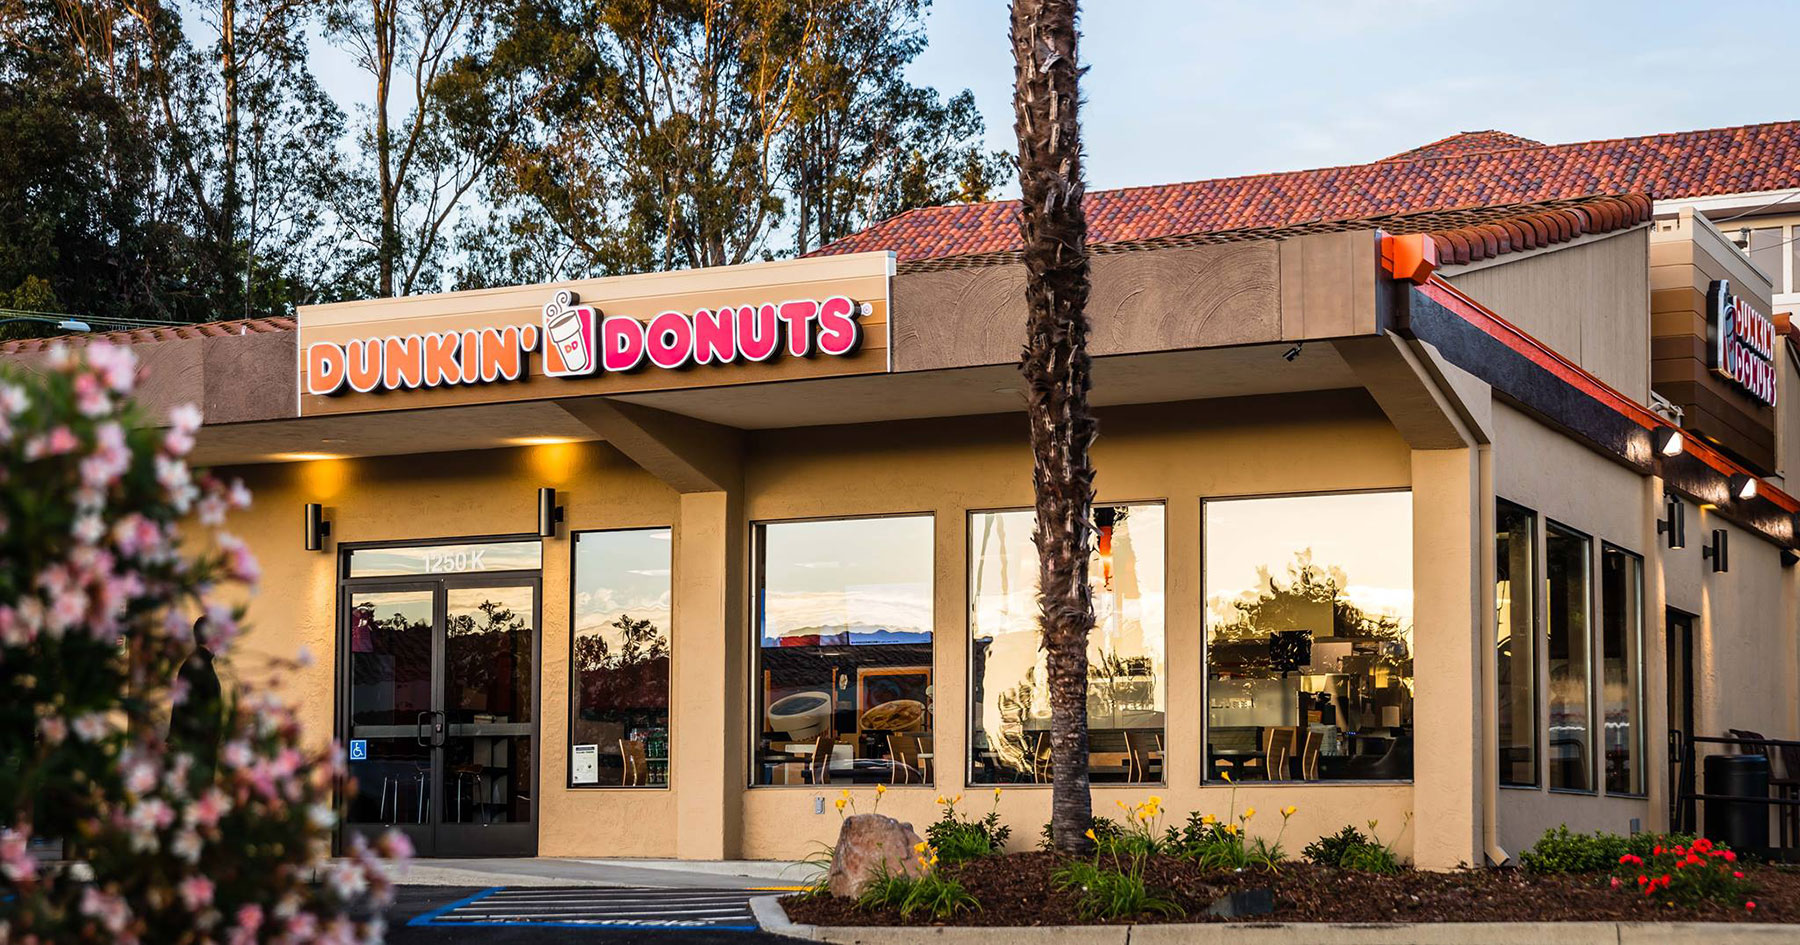 6 surprises from Dunkin' Donuts